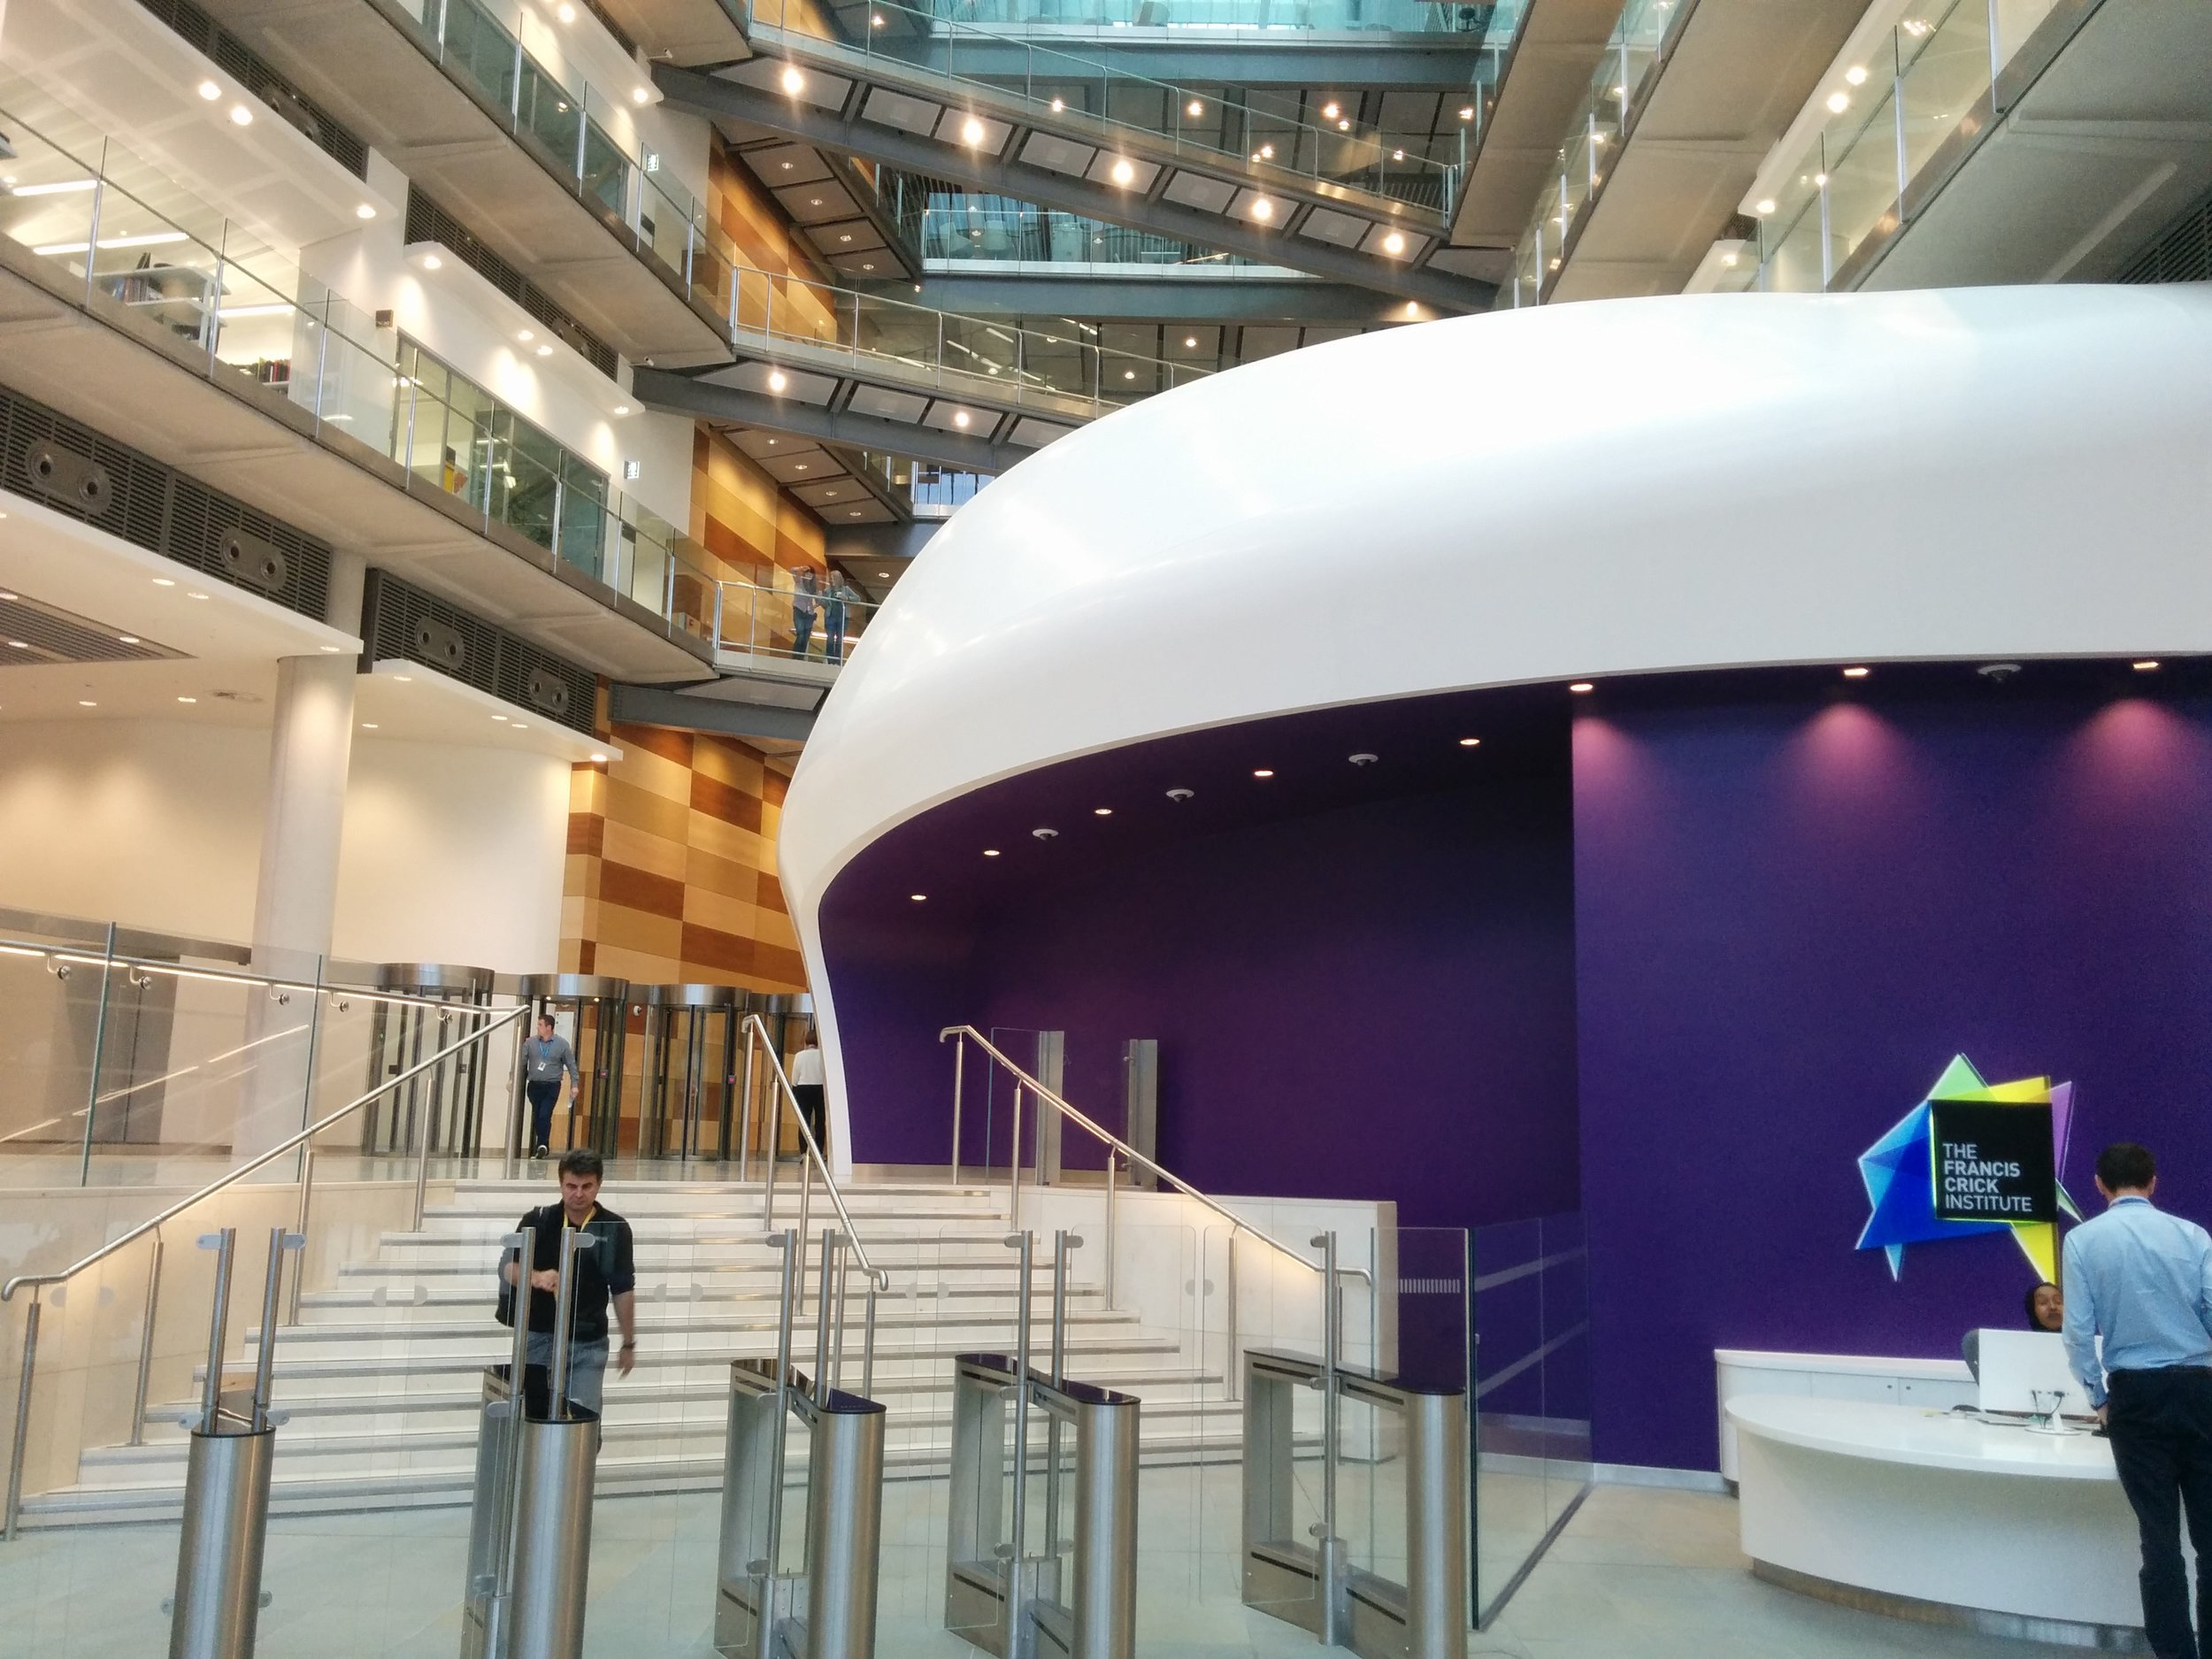 The Frances Crick Institute is situated beneath St Pancras International railway station in London.